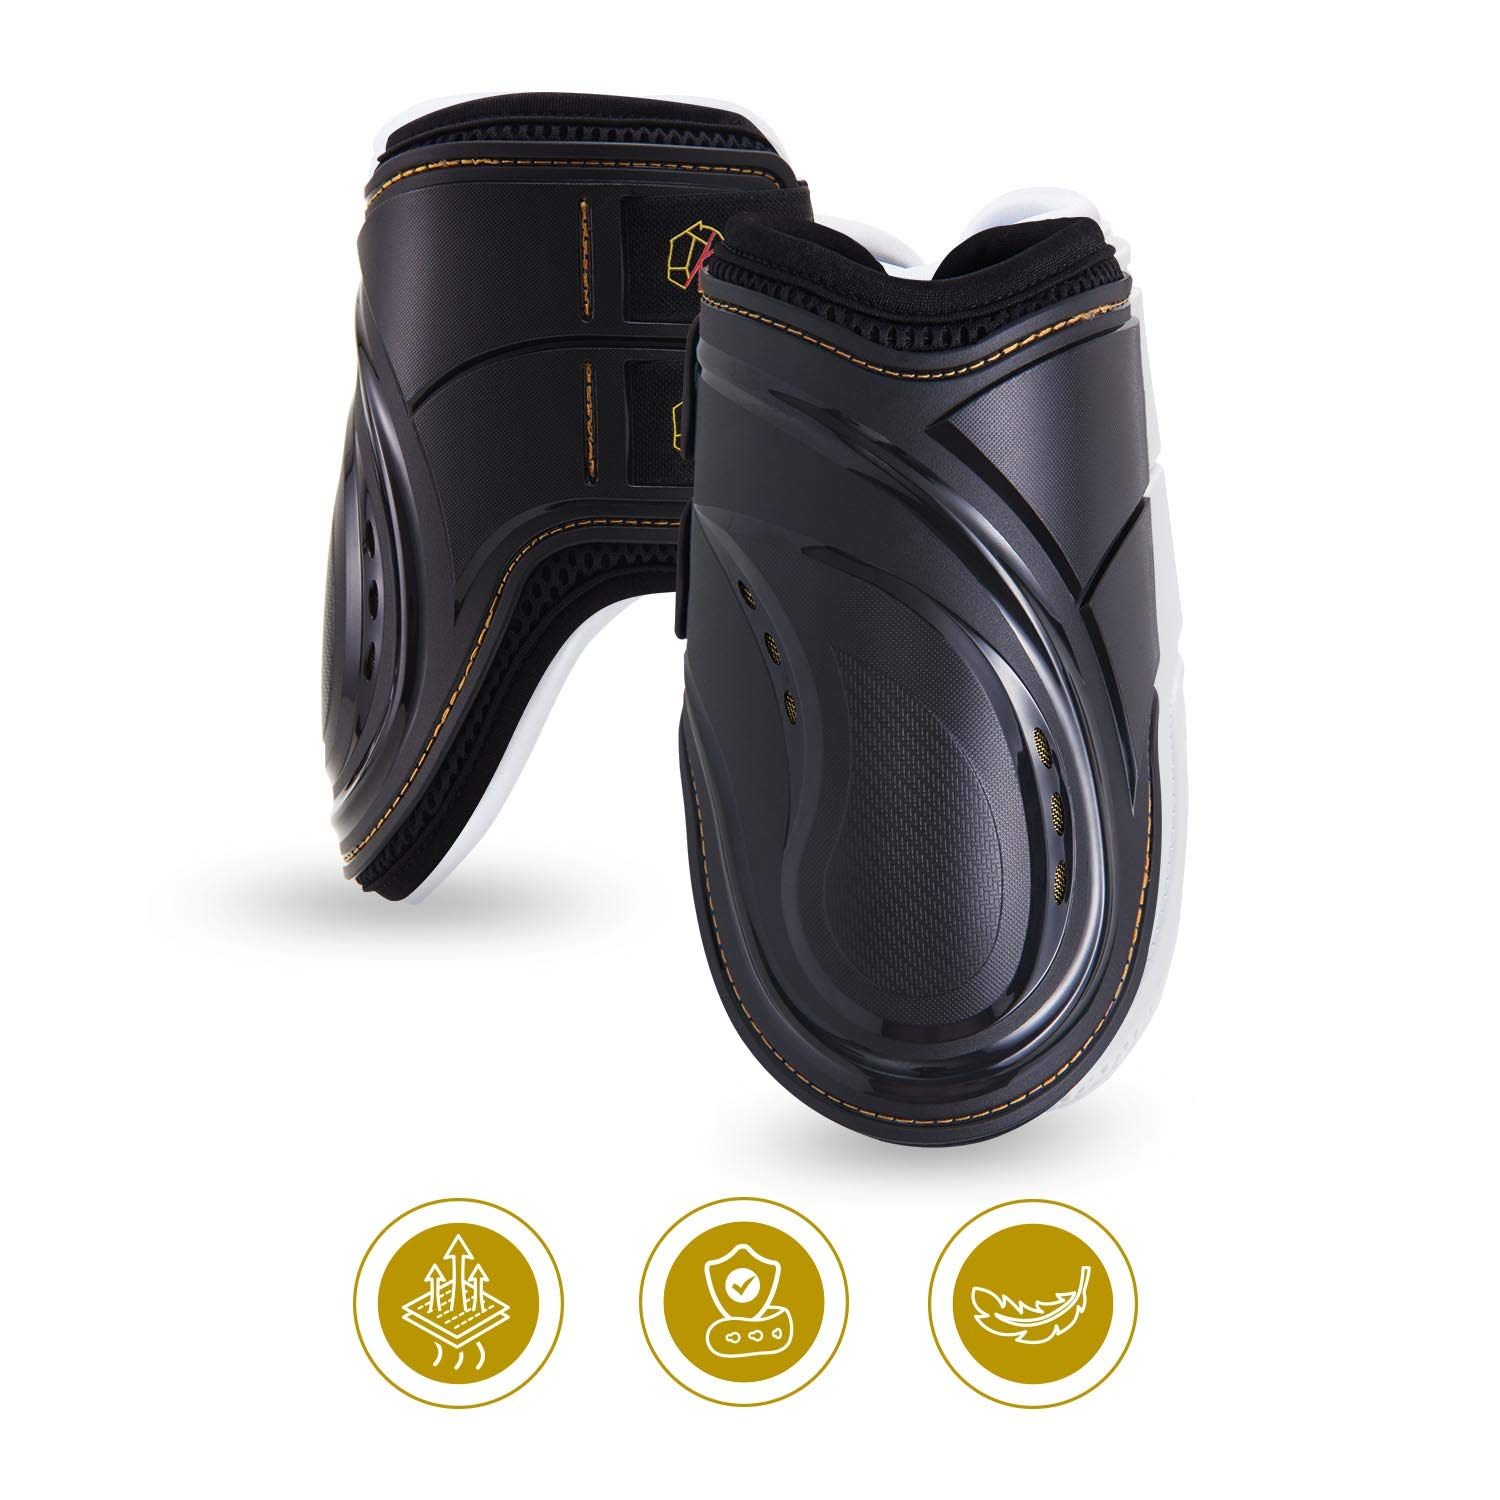 Kavallerie Fetlock Boots for Horses Pro-K 3D Air Mesh Horse Ankle Boots with Impact Resistant and Breathable Soft Padding for Horse Jumping & Training Black